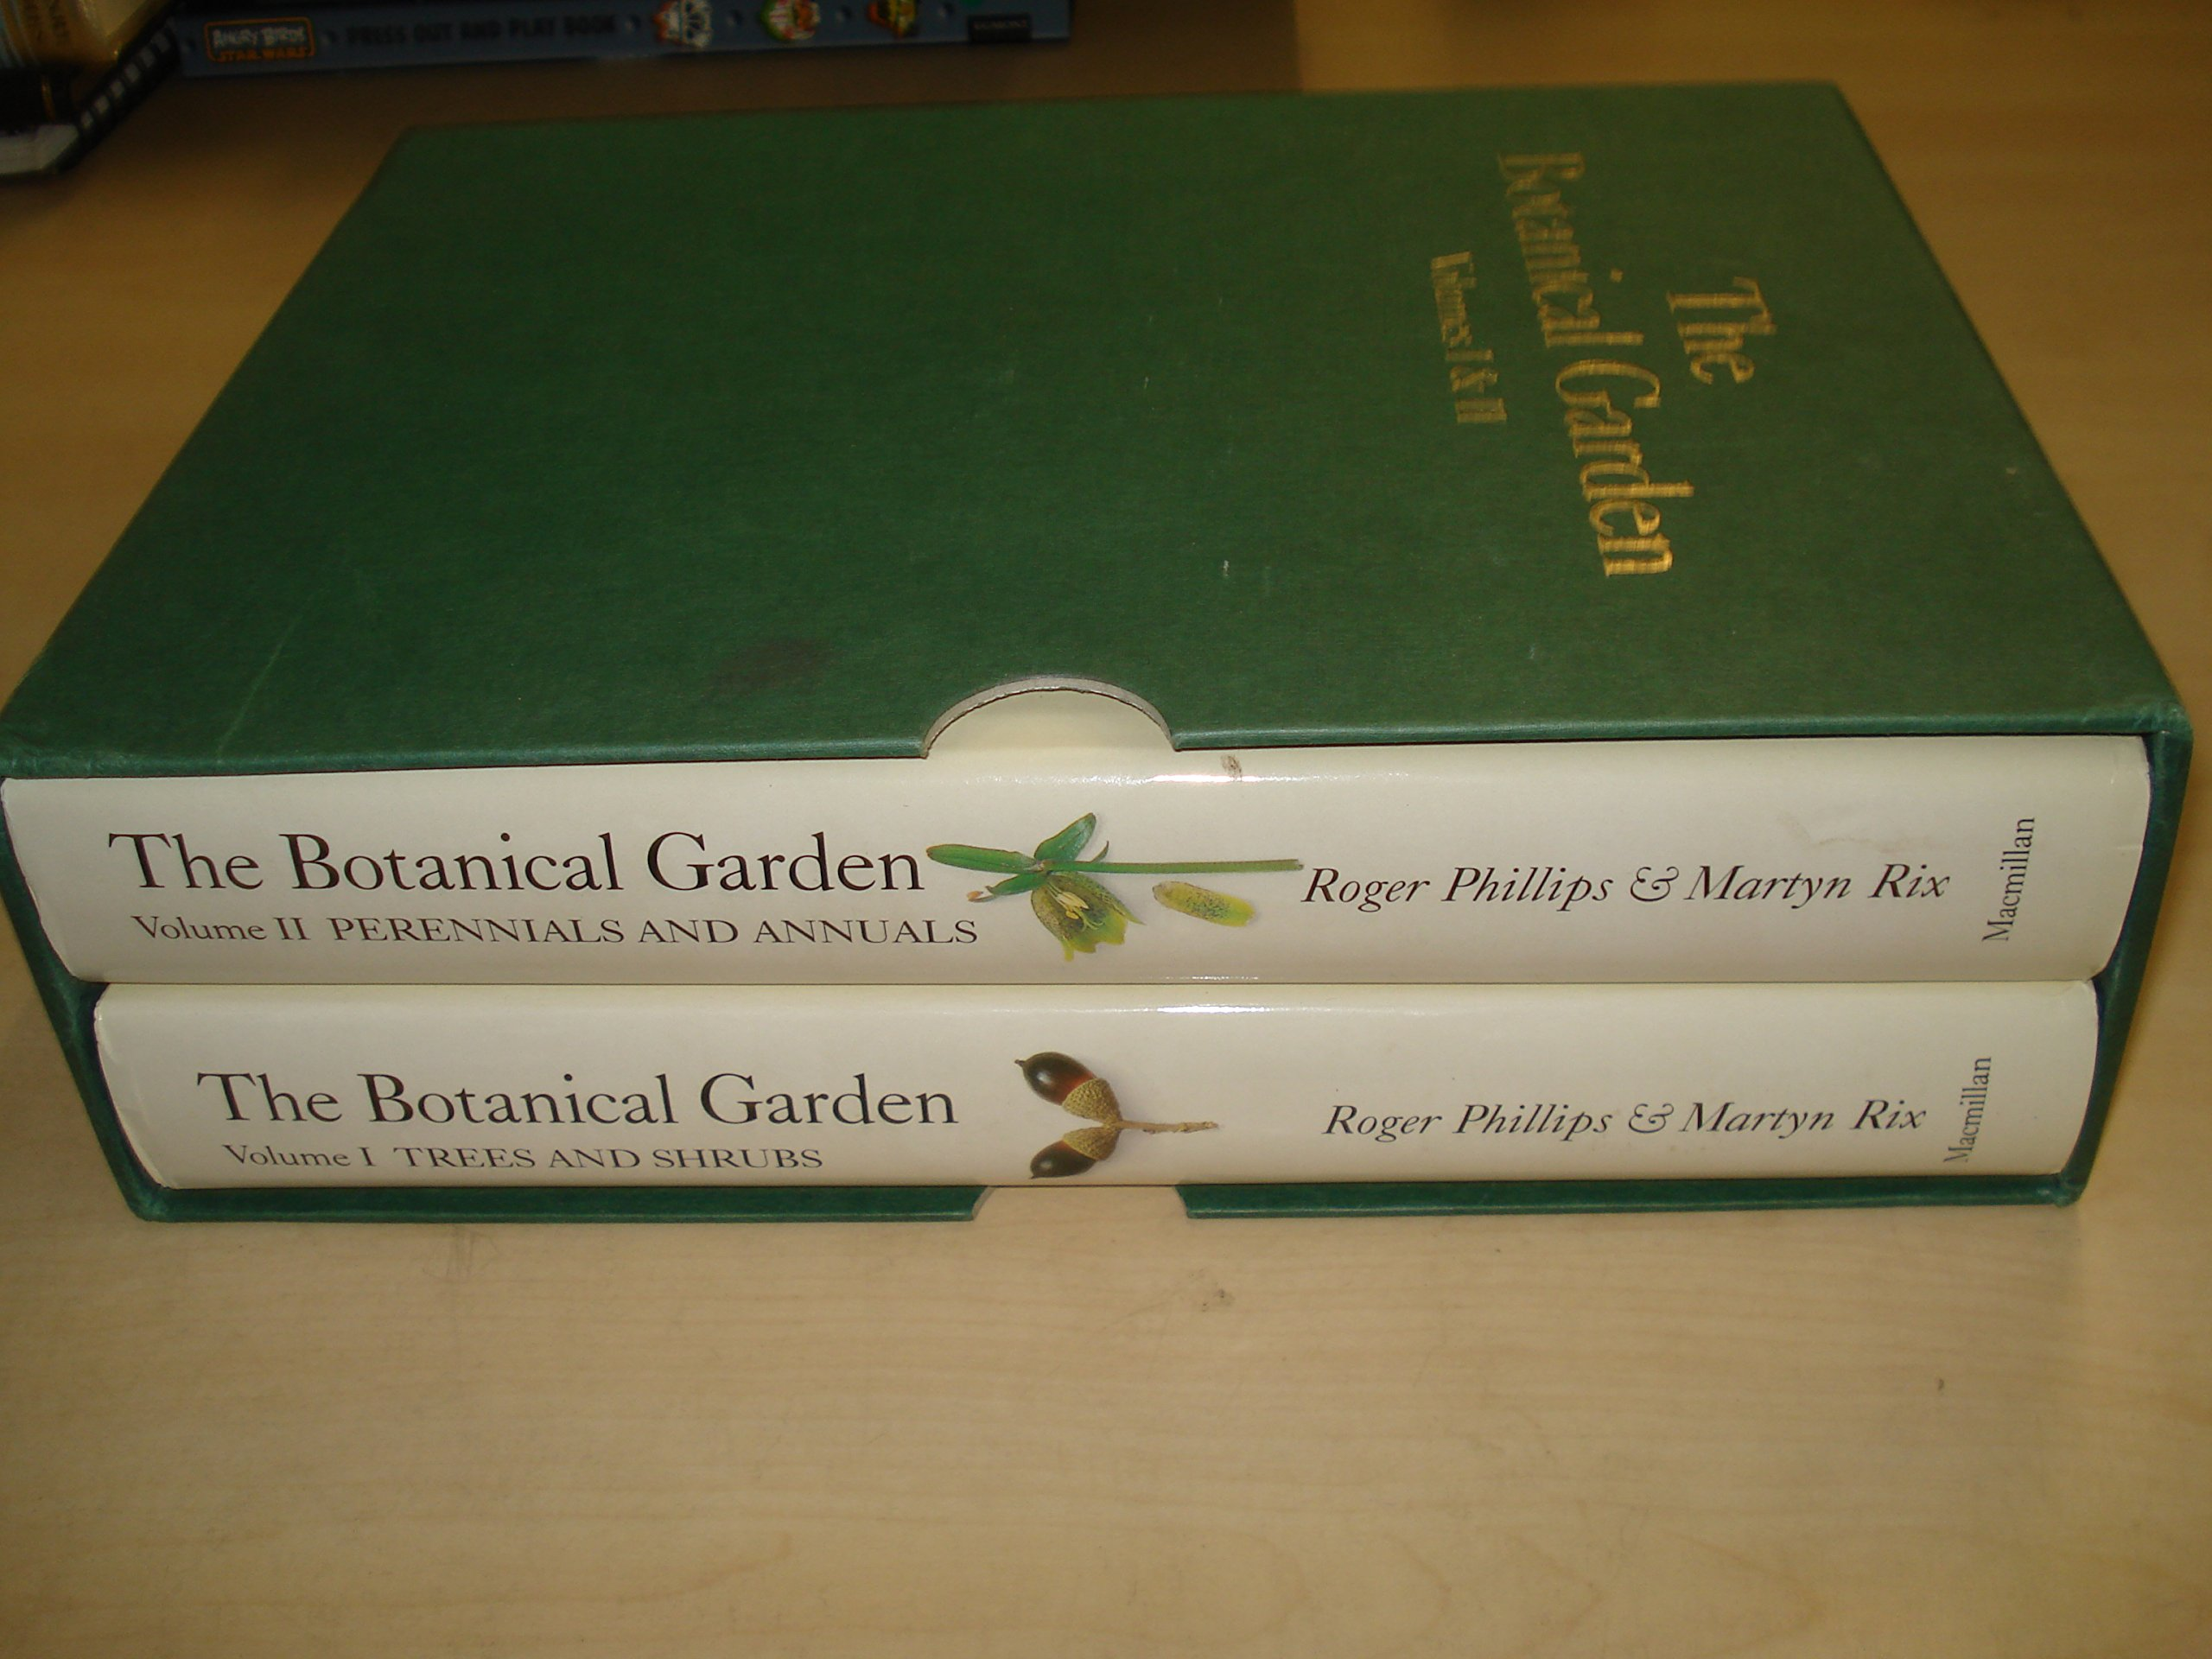 The Botanical Garden - Two Volumes: I. Trees and Shrubs; II. Perennials and Annuals